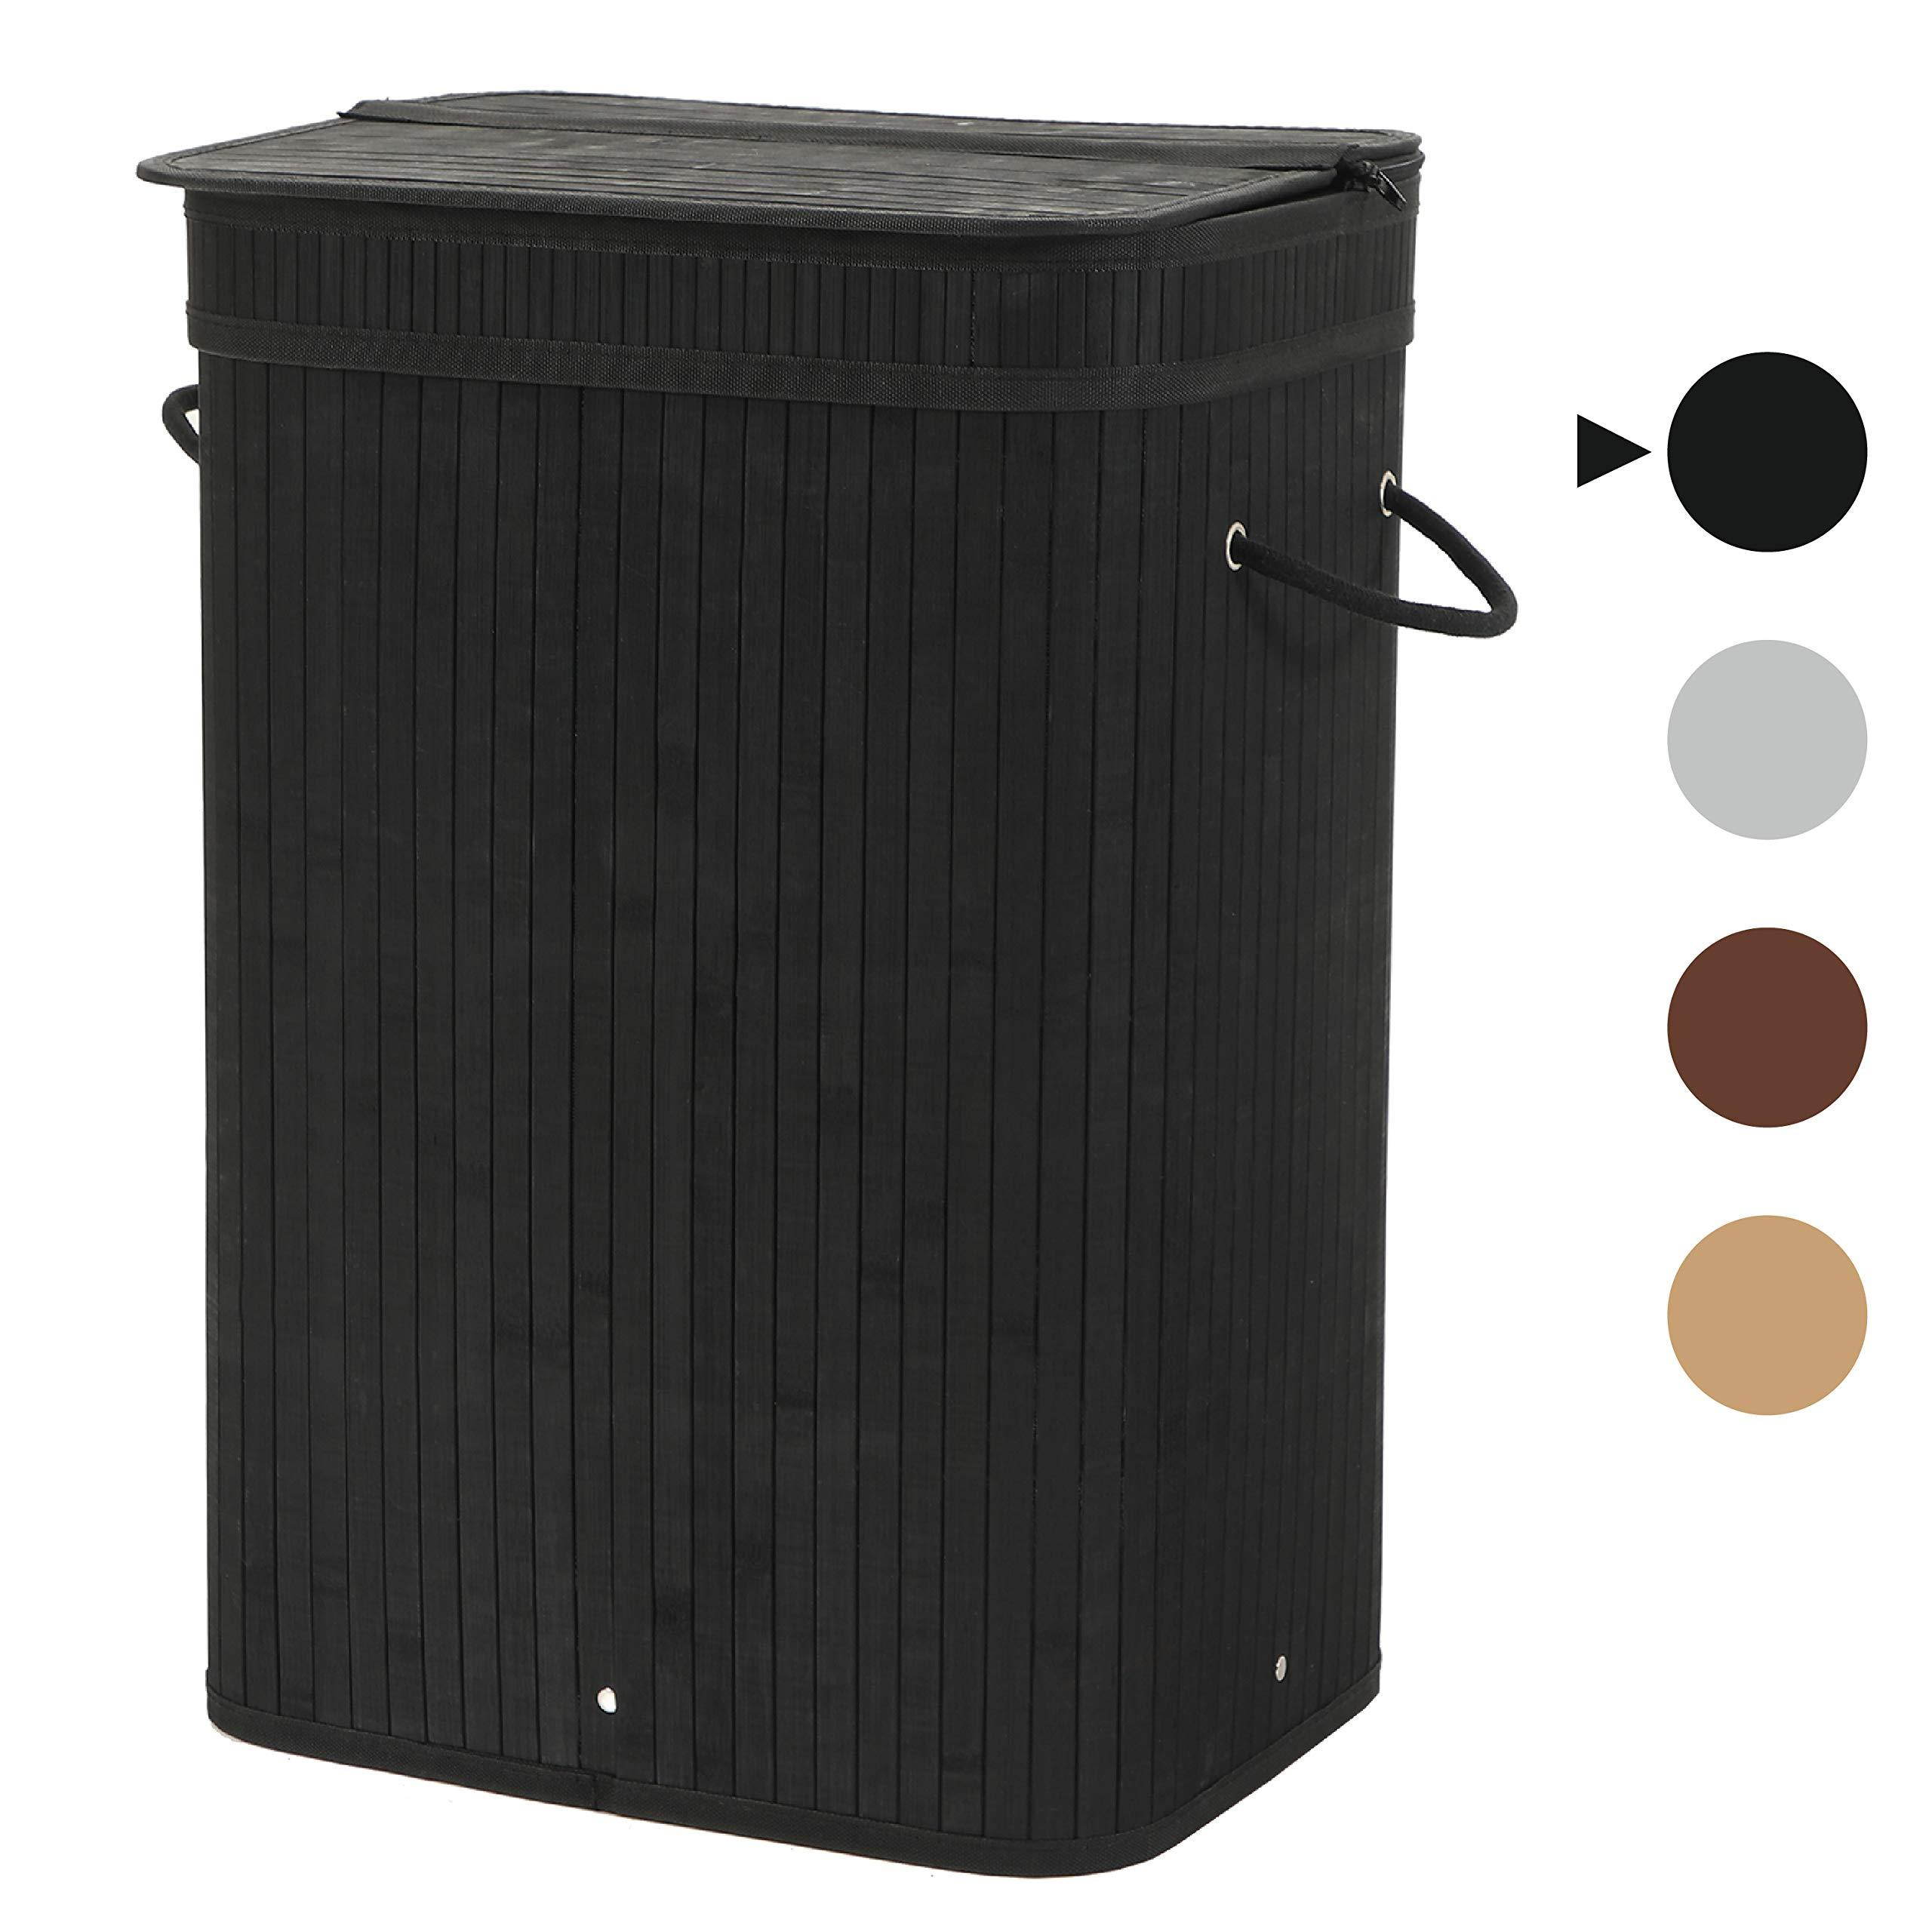 Sophia & William 72L Laundry Hamper Dirty Clothes Bamboo Storage Basket with Lid Liner and Handles Rectangular Black